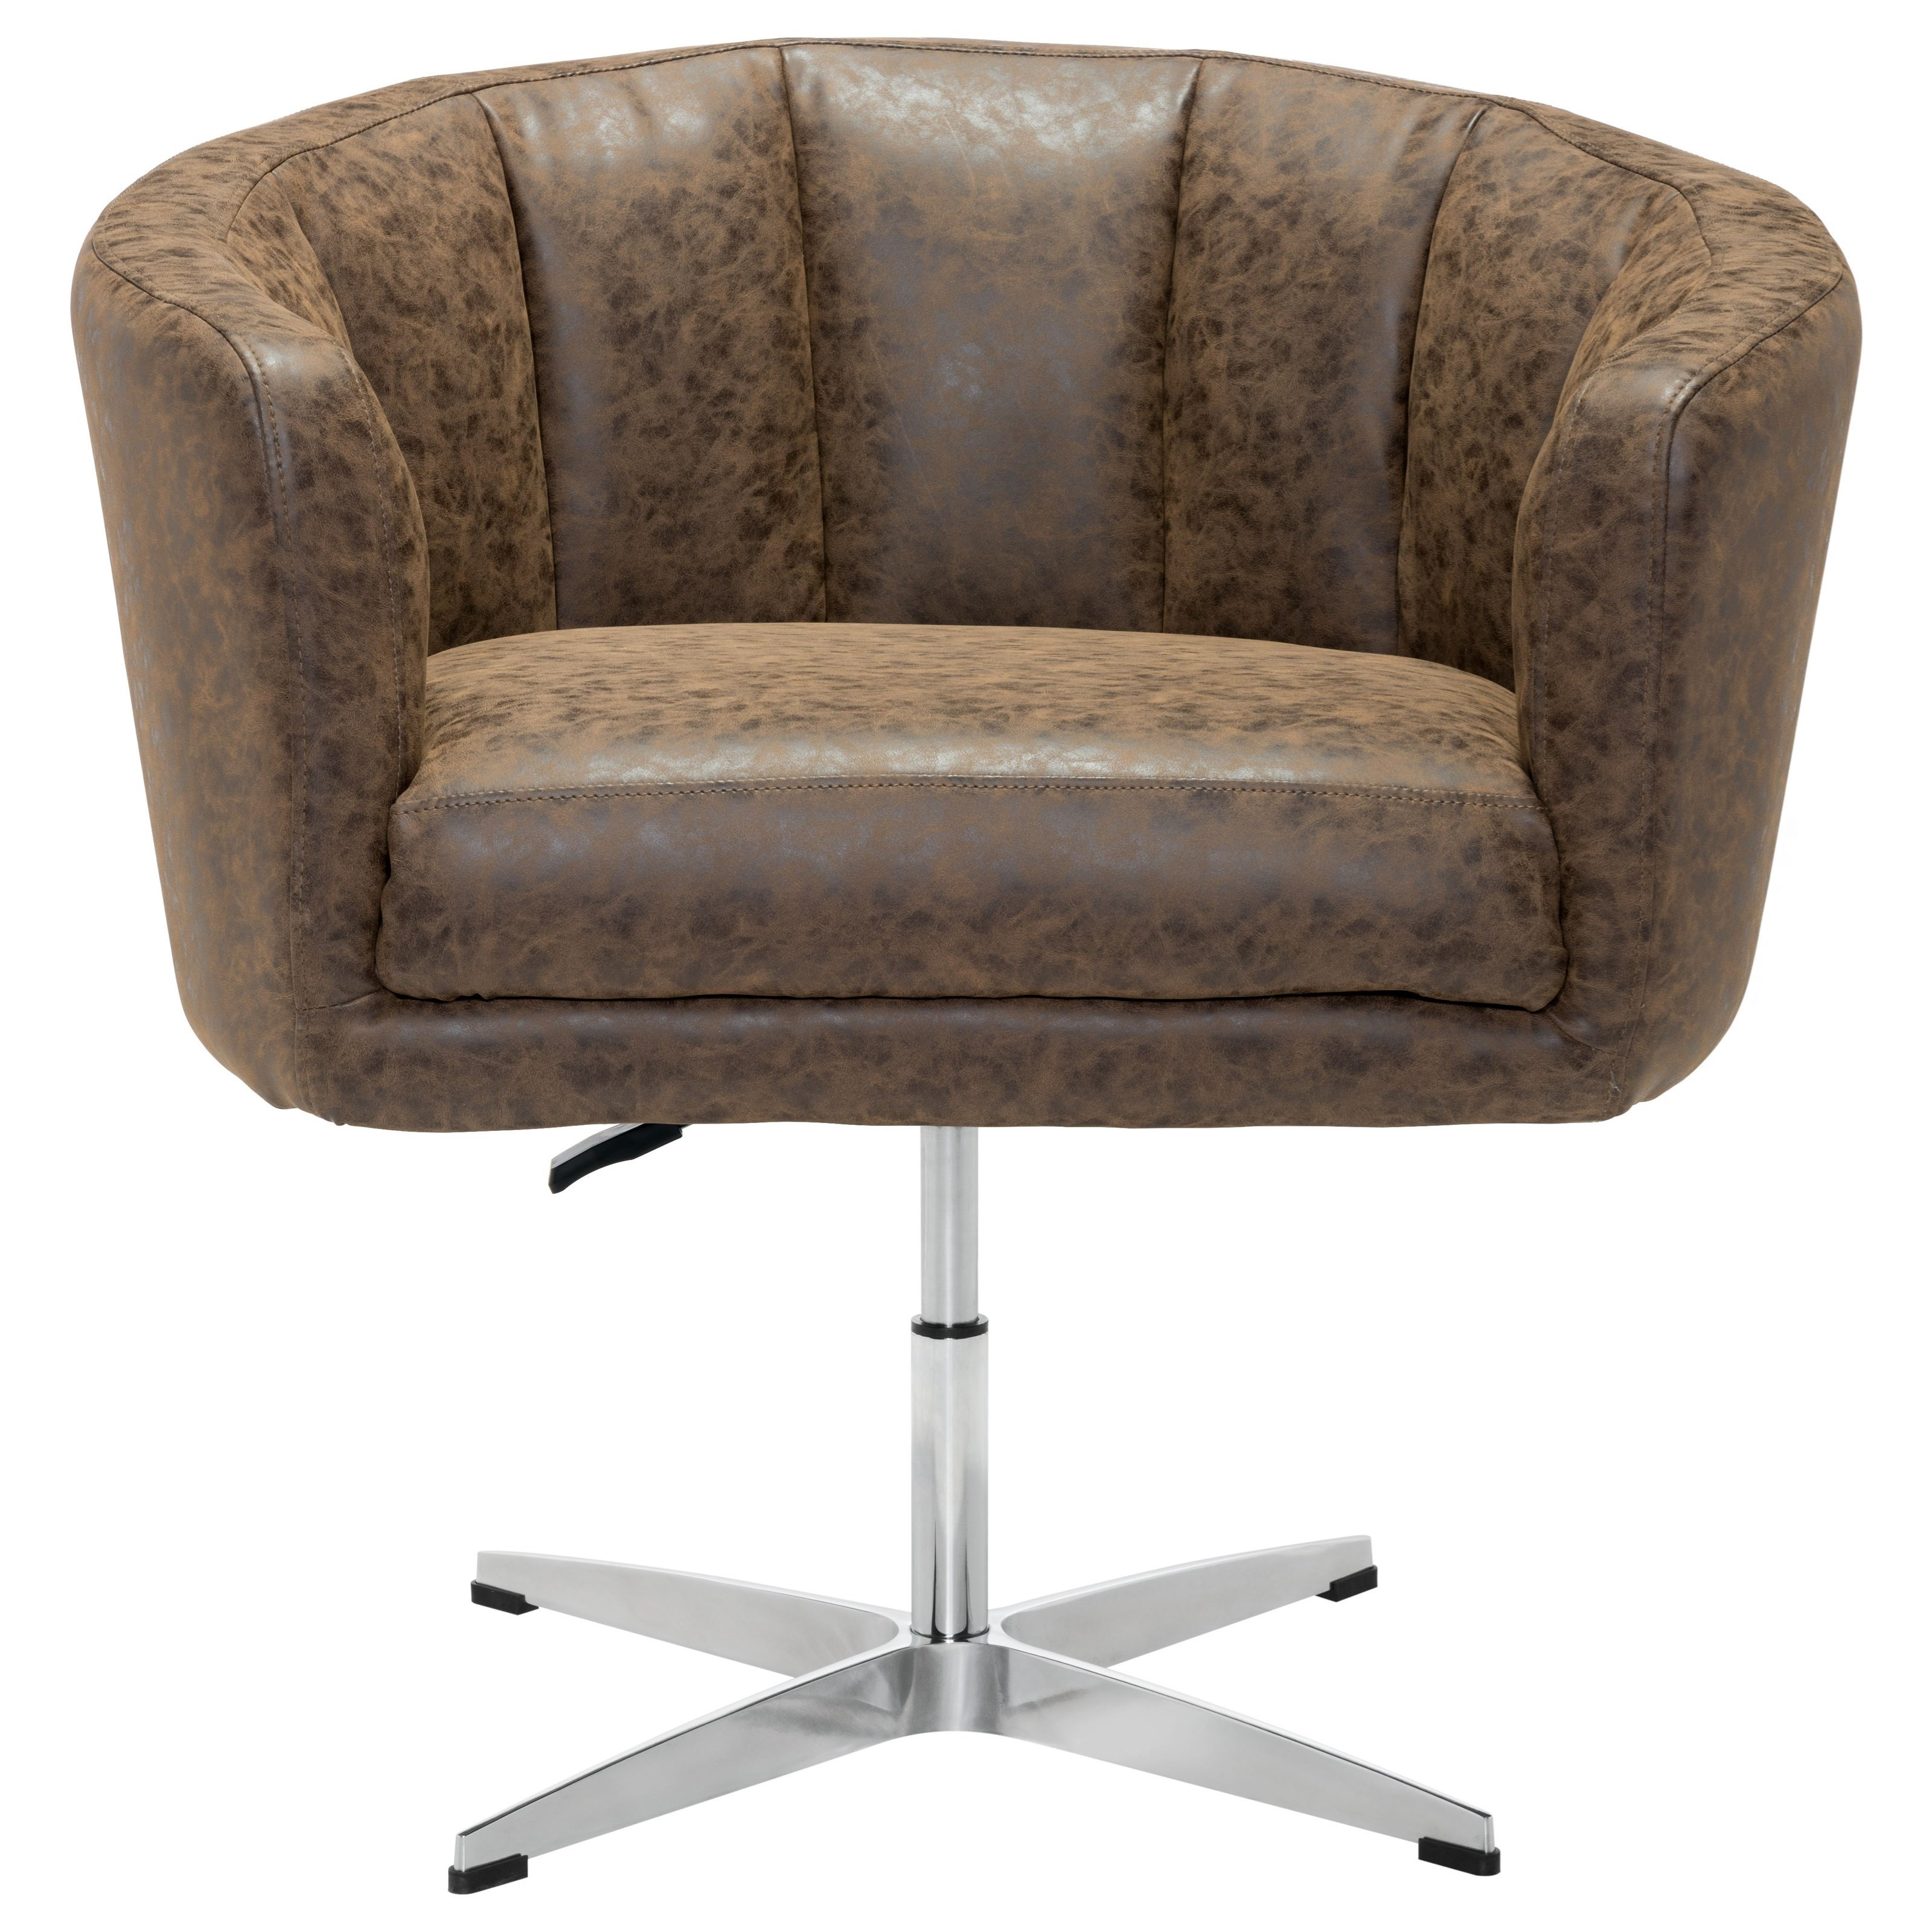 Wilshire Occasional Chair by Zuo at Nassau Furniture and Mattress